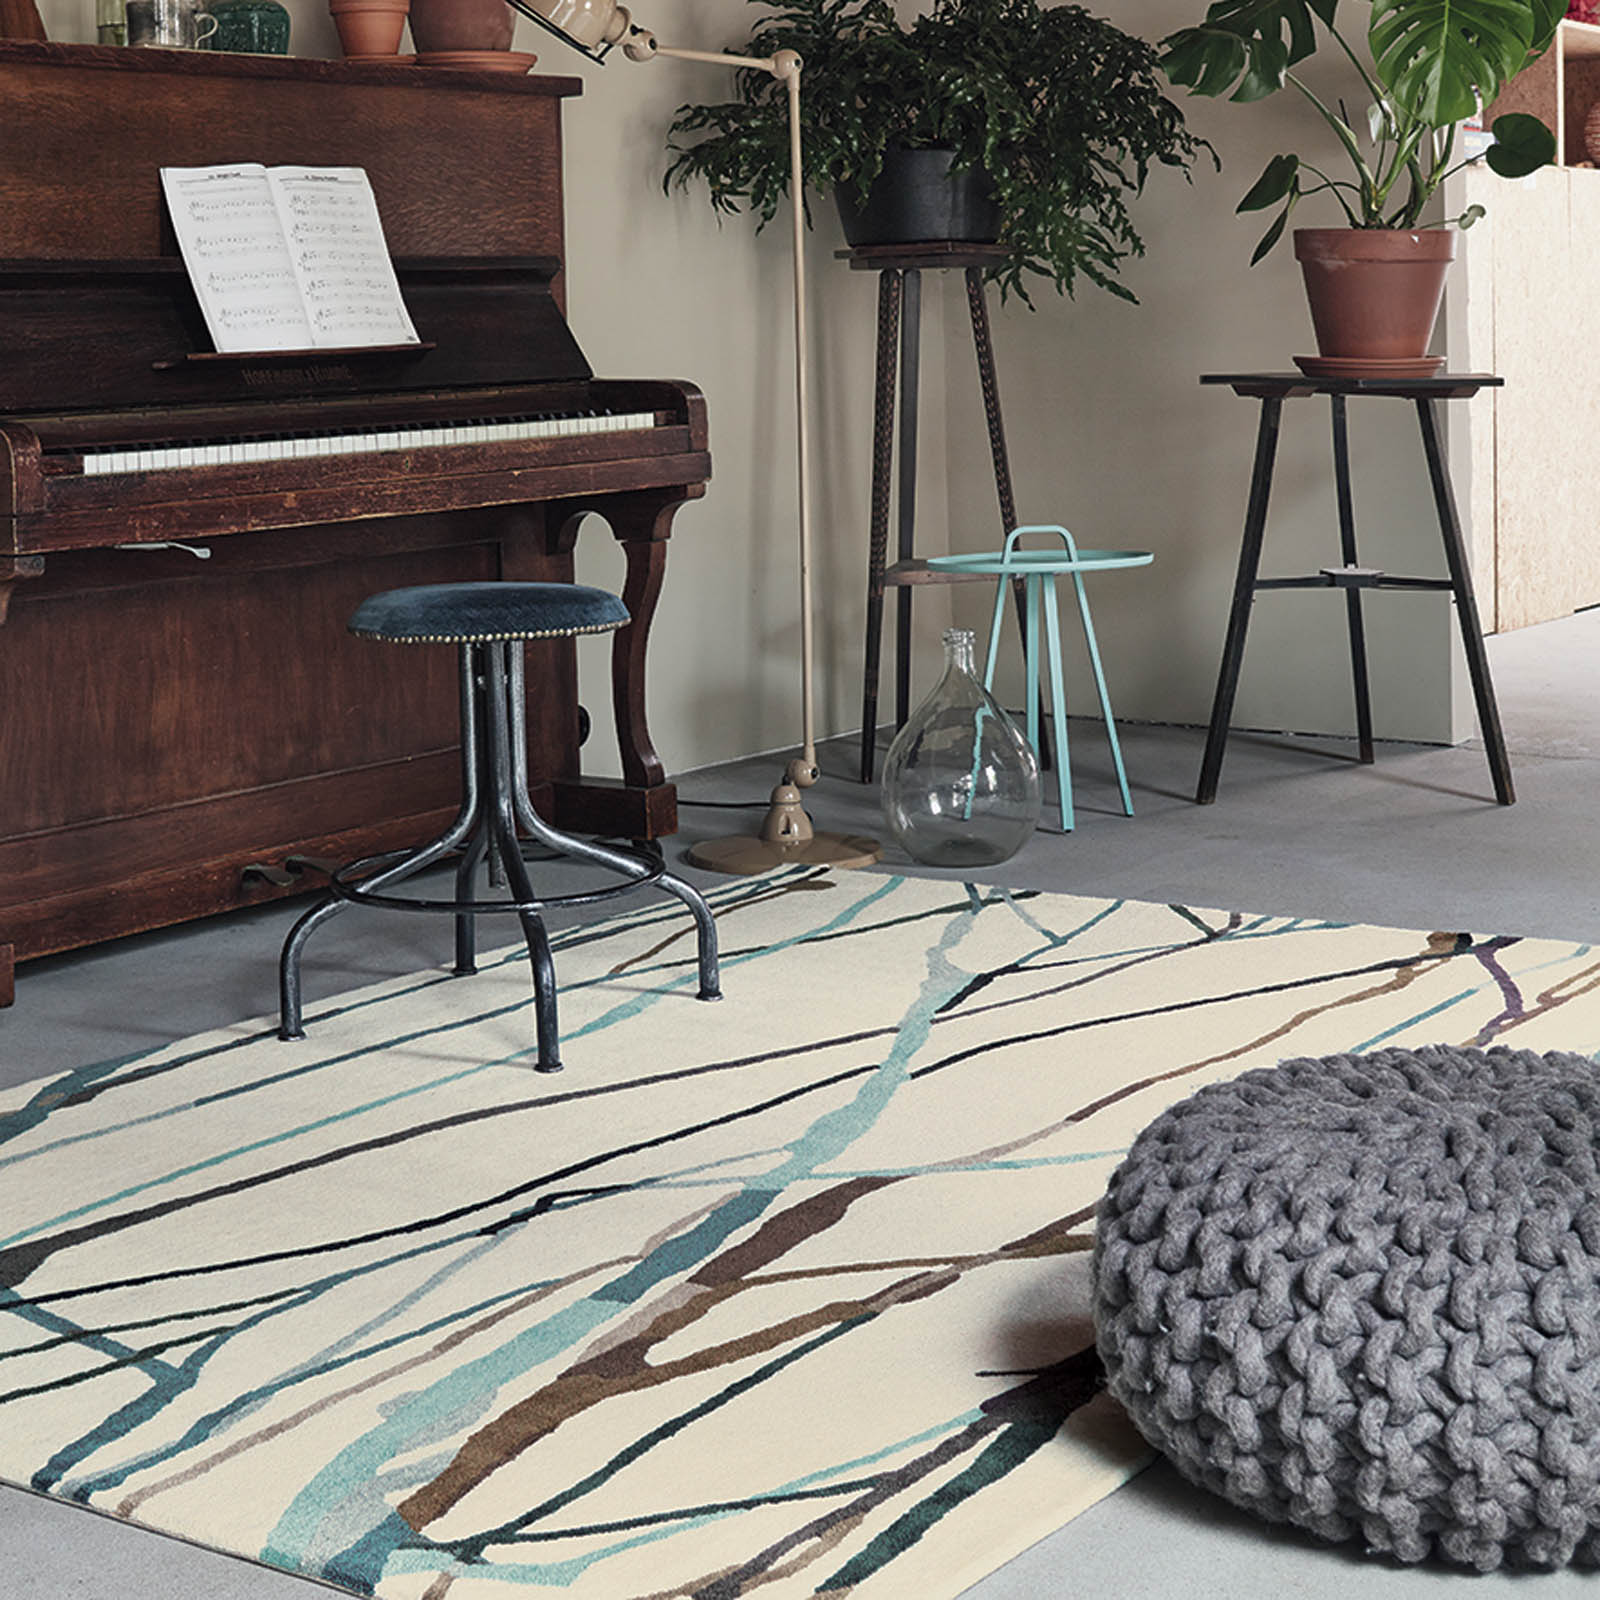 Xian Drip 78104 Rugs by Brink and Campman